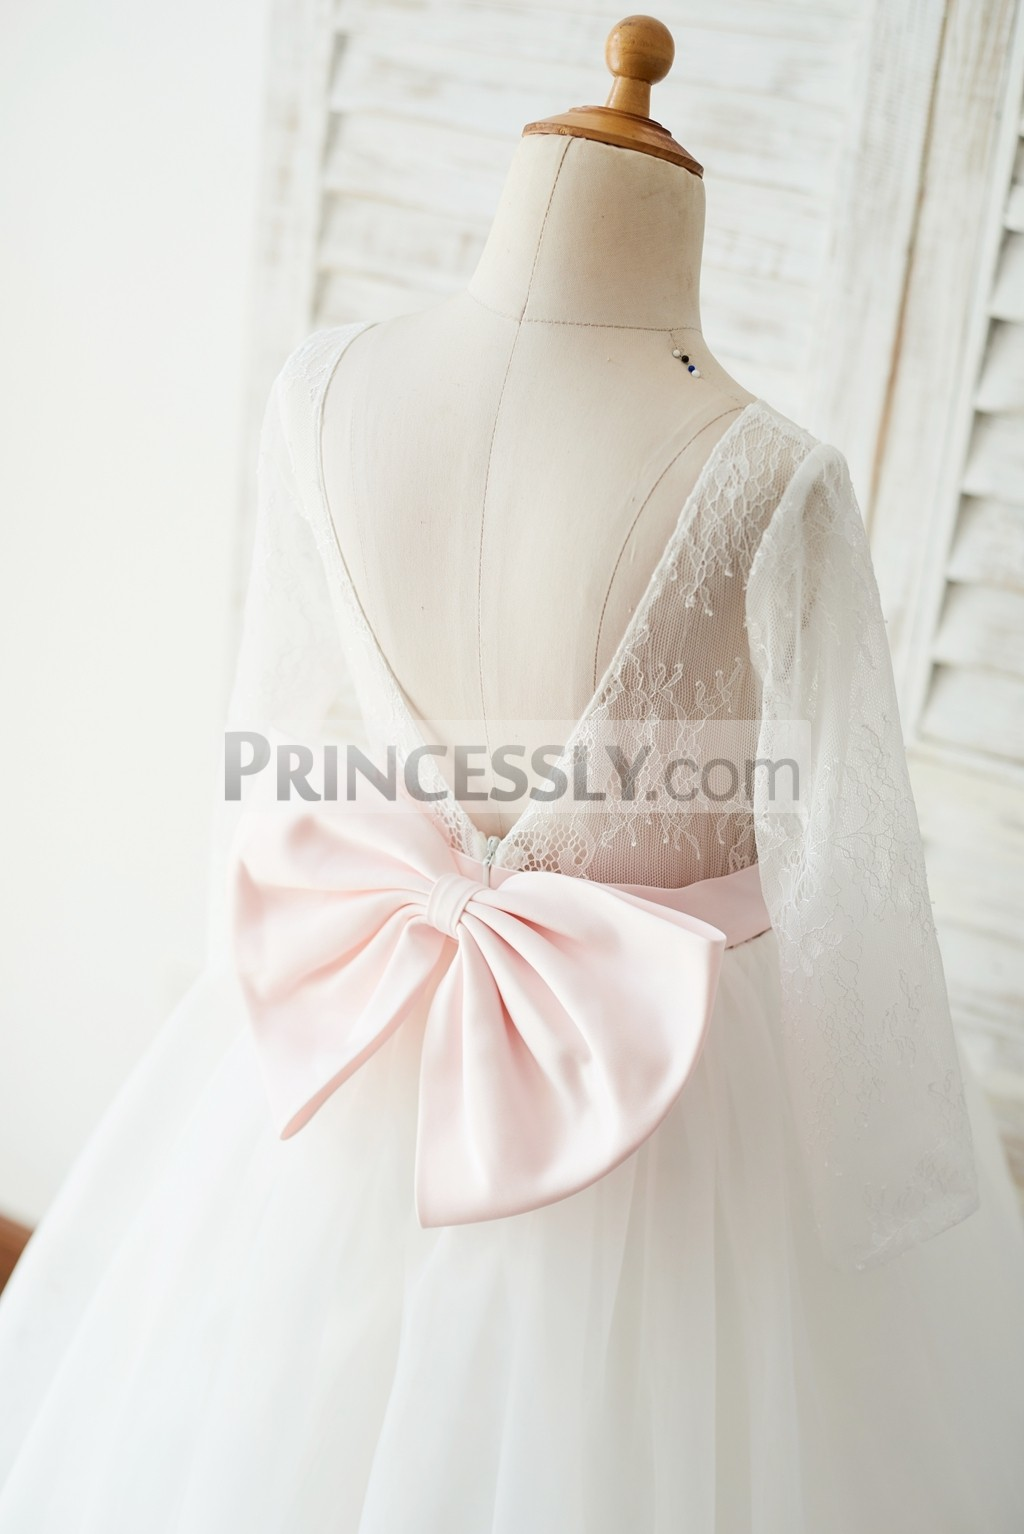 Pink bow attached on zipper closure part